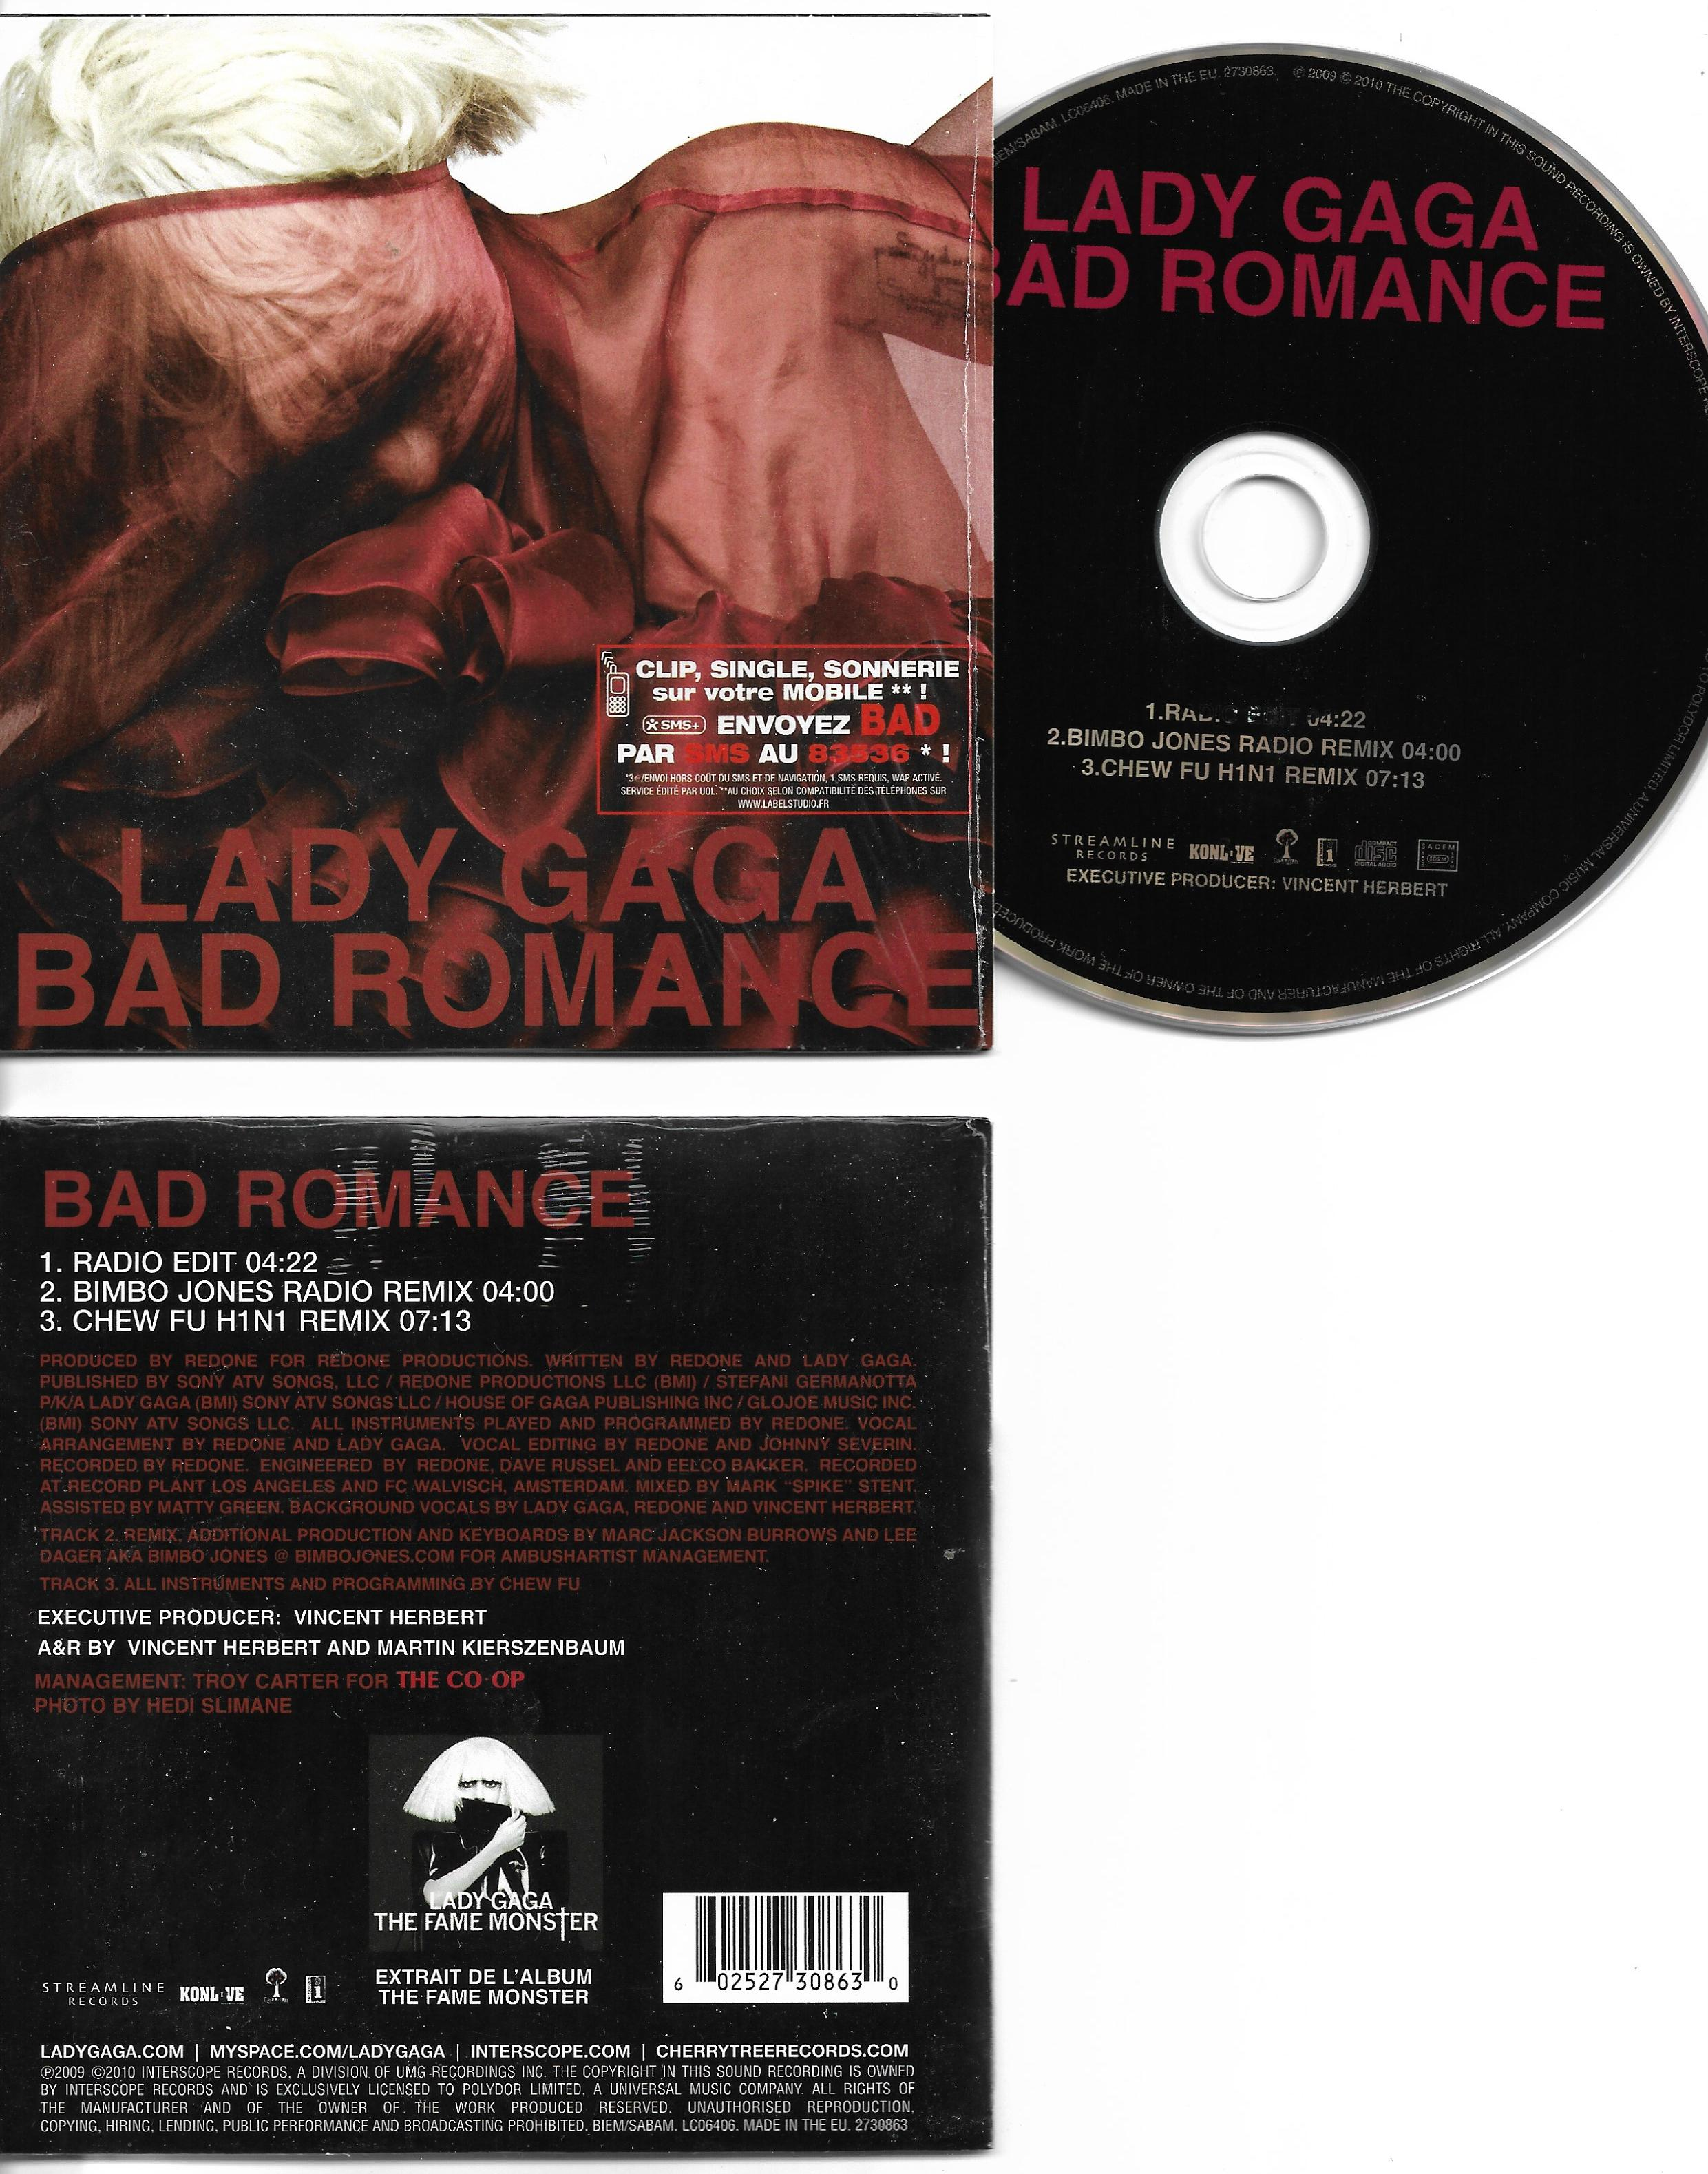 Lady GAGA - Bad Romance Card Sleeve 3-track